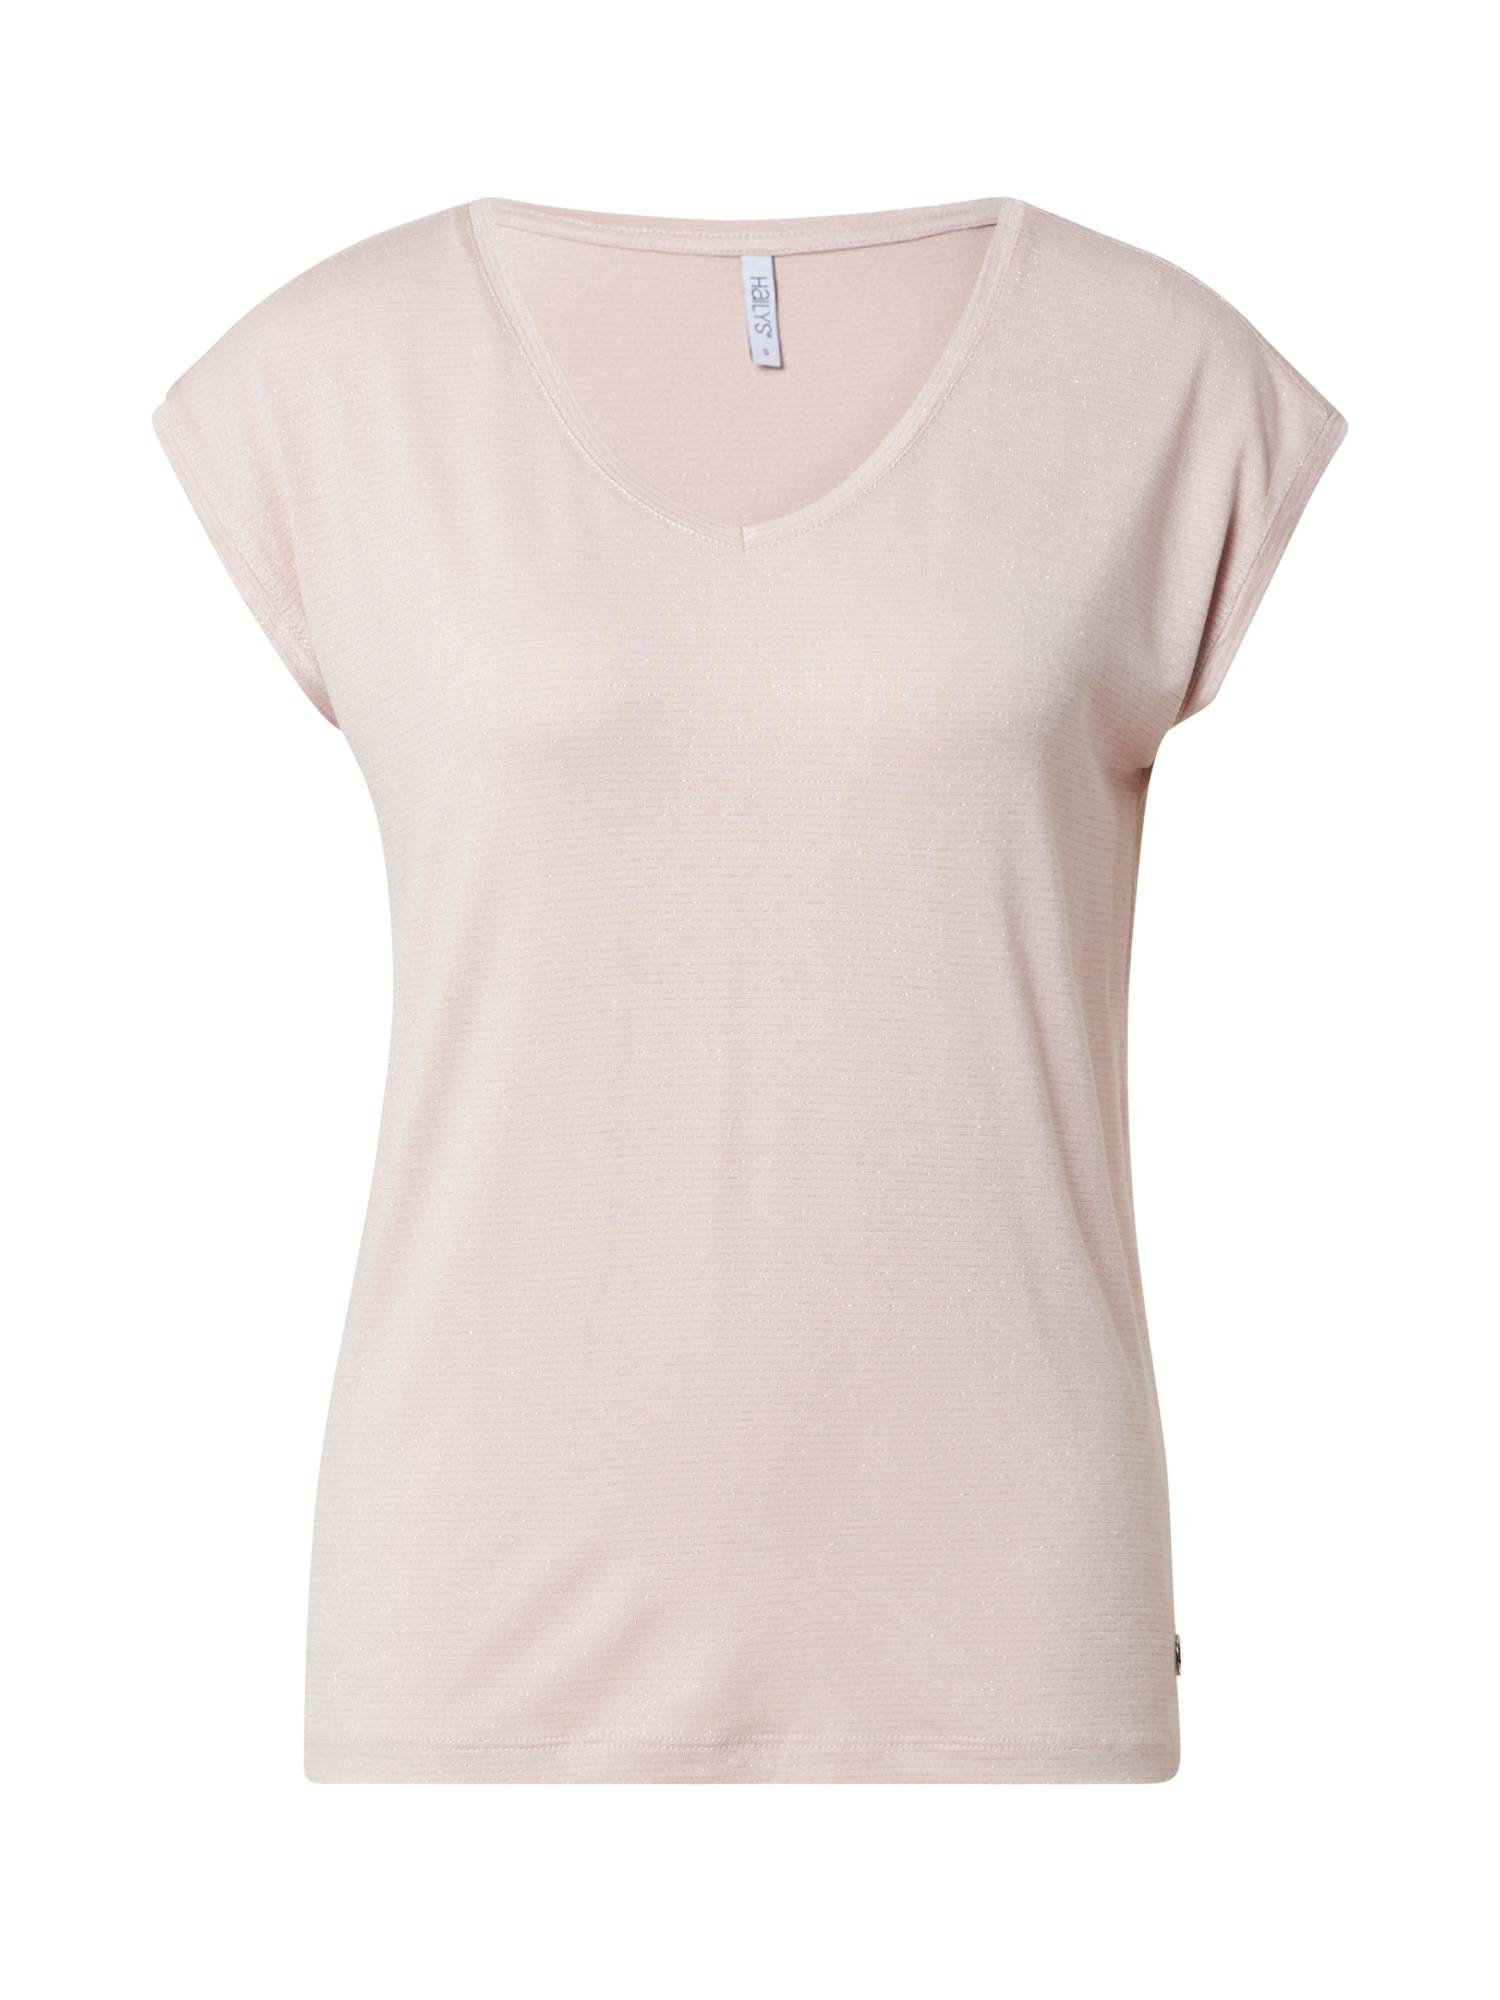 Hailys T-shirt 'TP Luxe'  - Rose - Taille: S - female